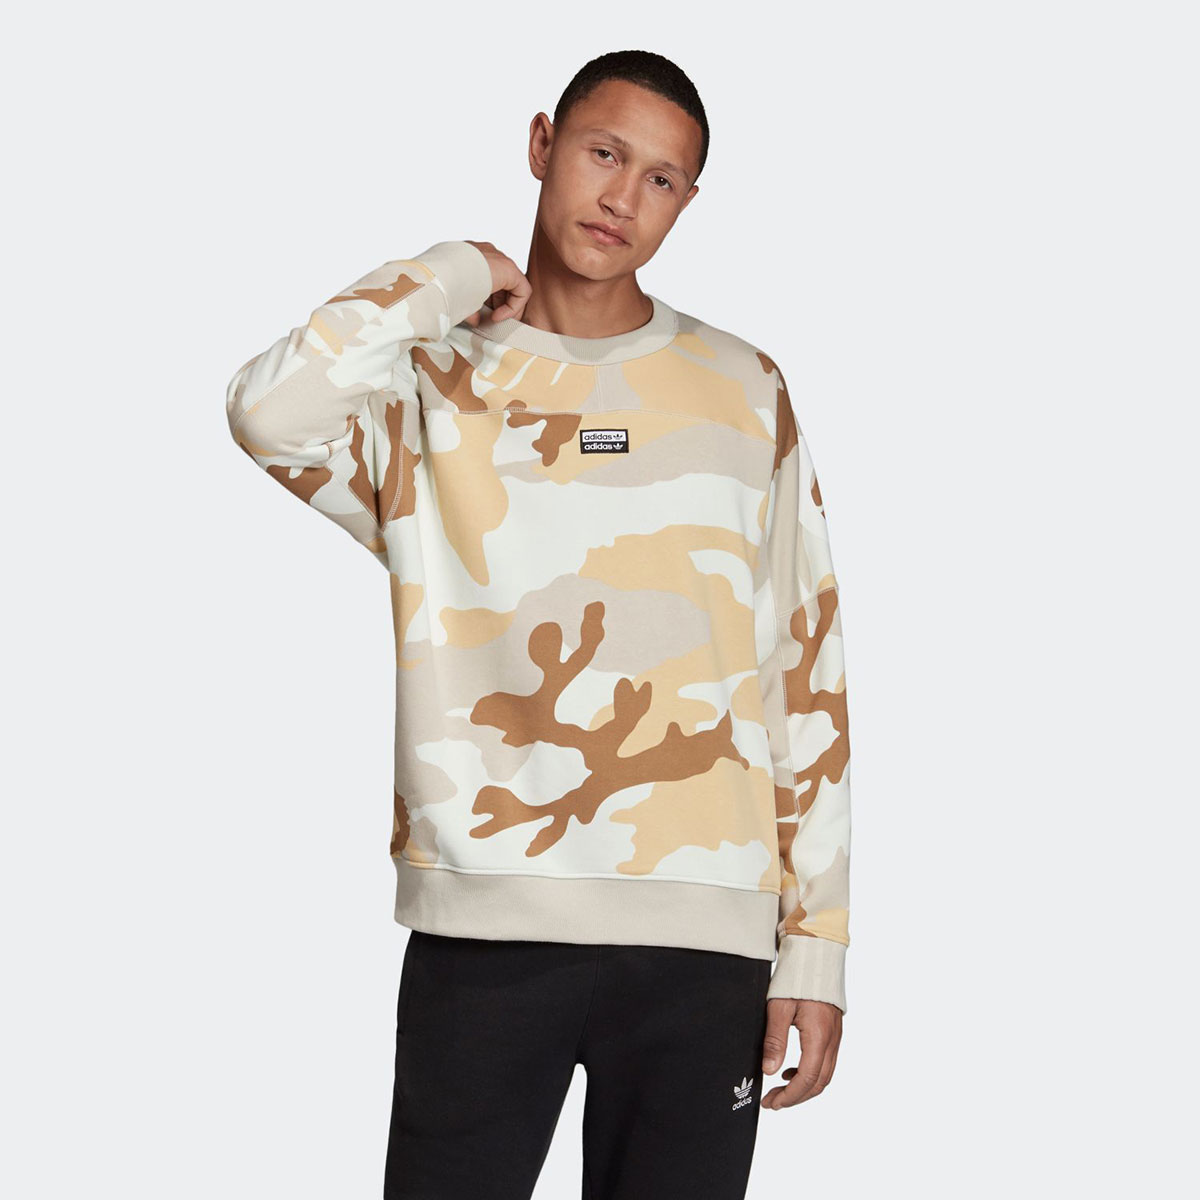 adidas VOCAL CAMO CREW(MULTI COLOR/CLEAR BROWN)(アディダス R.Y.V カモ クルー)【メンズ】【スウェット】【19FW-I】